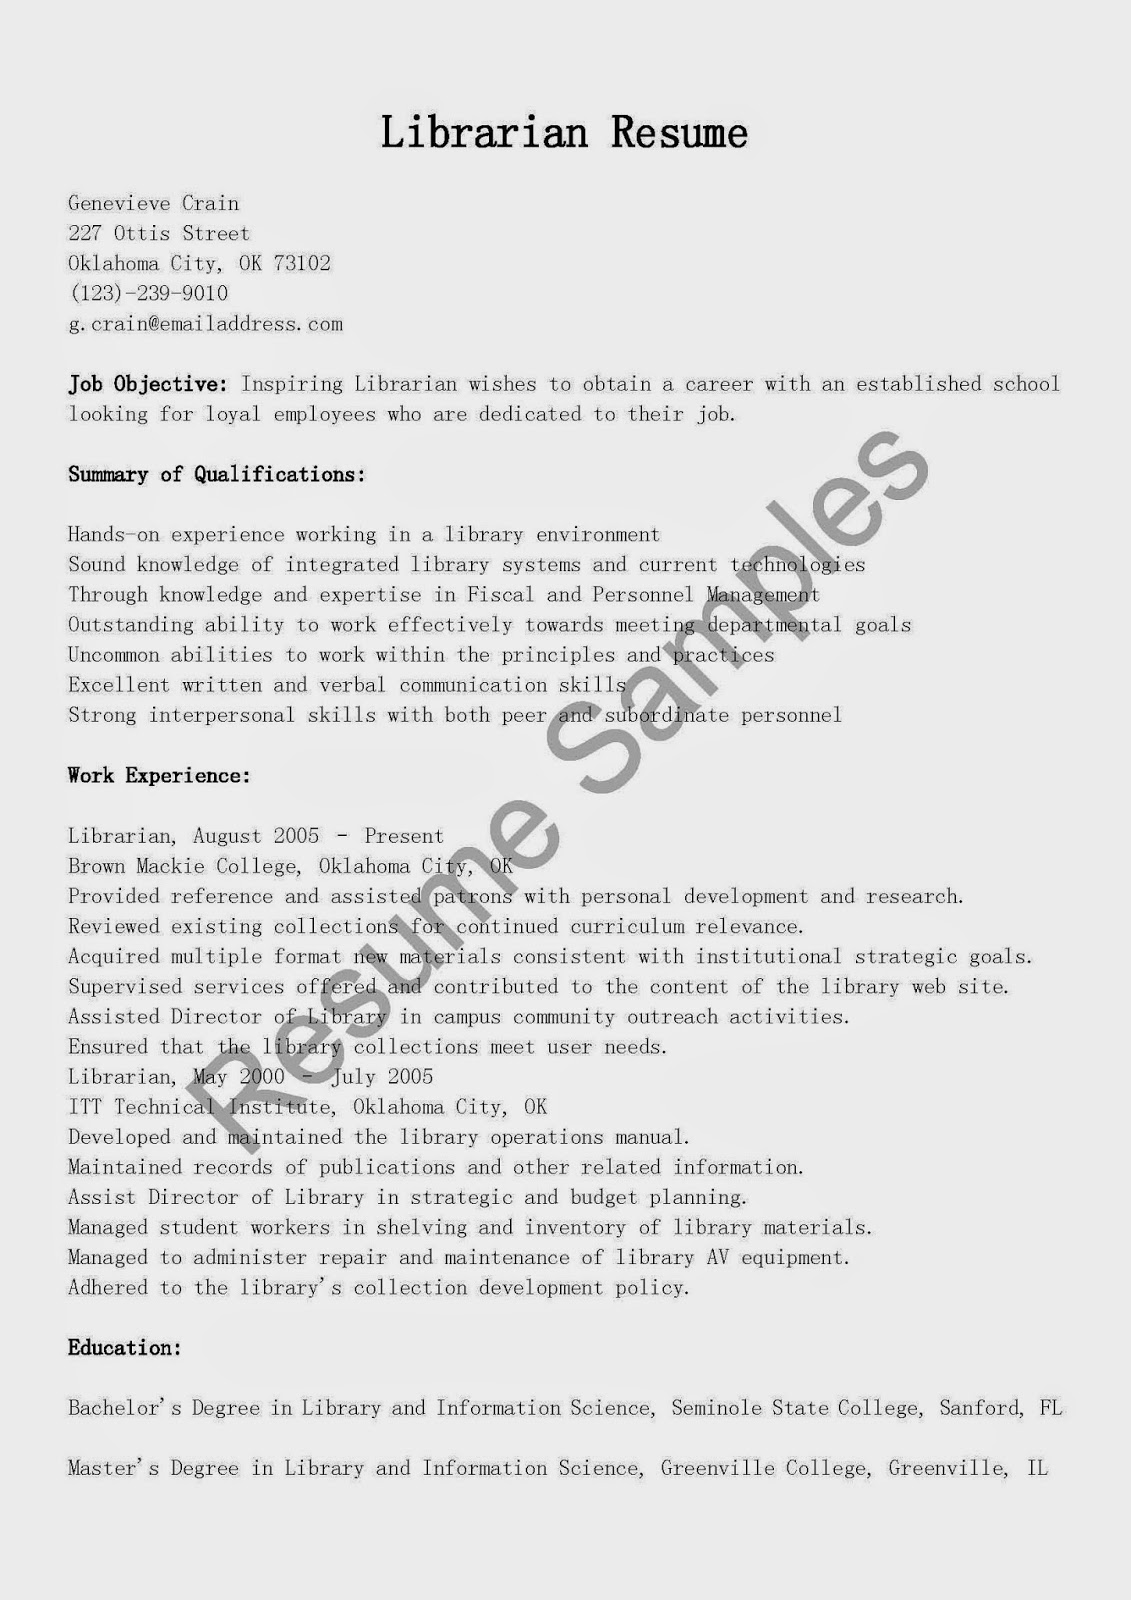 Library Resume Higher Education Objective